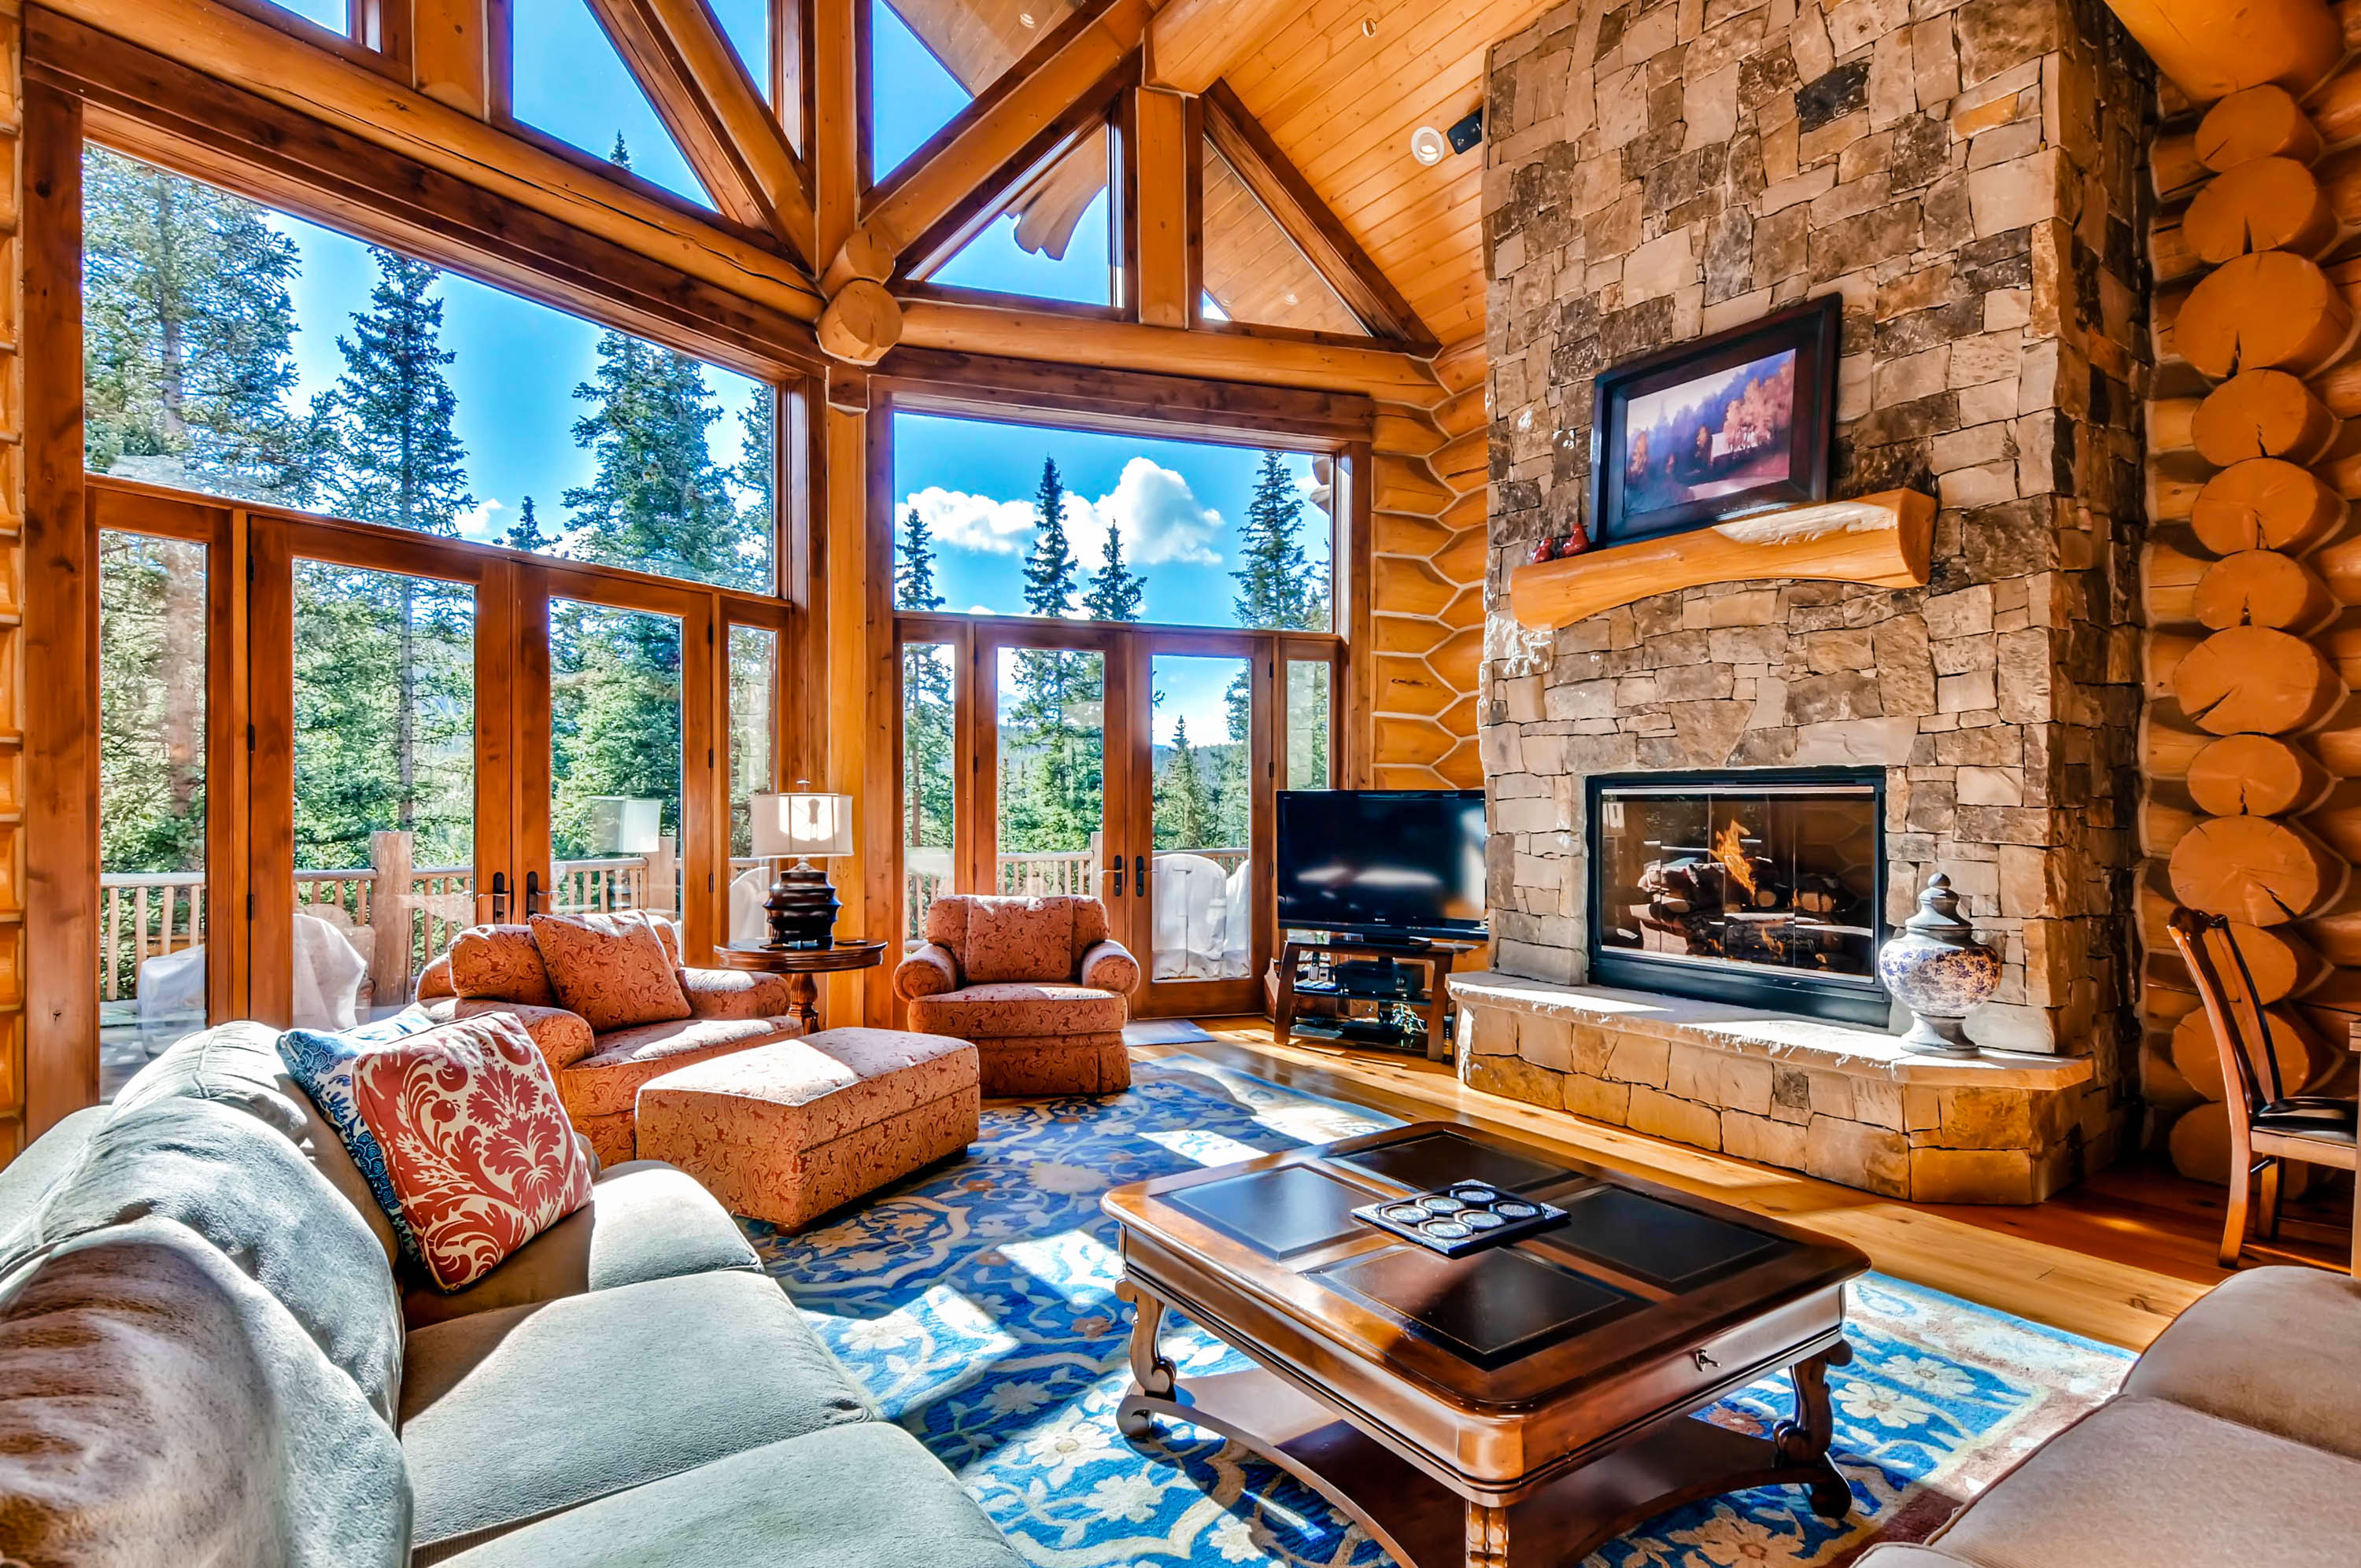 m and hagerman travel getaways creek lodge breckenridge retreat billingsley cabins sunset best id for magazine